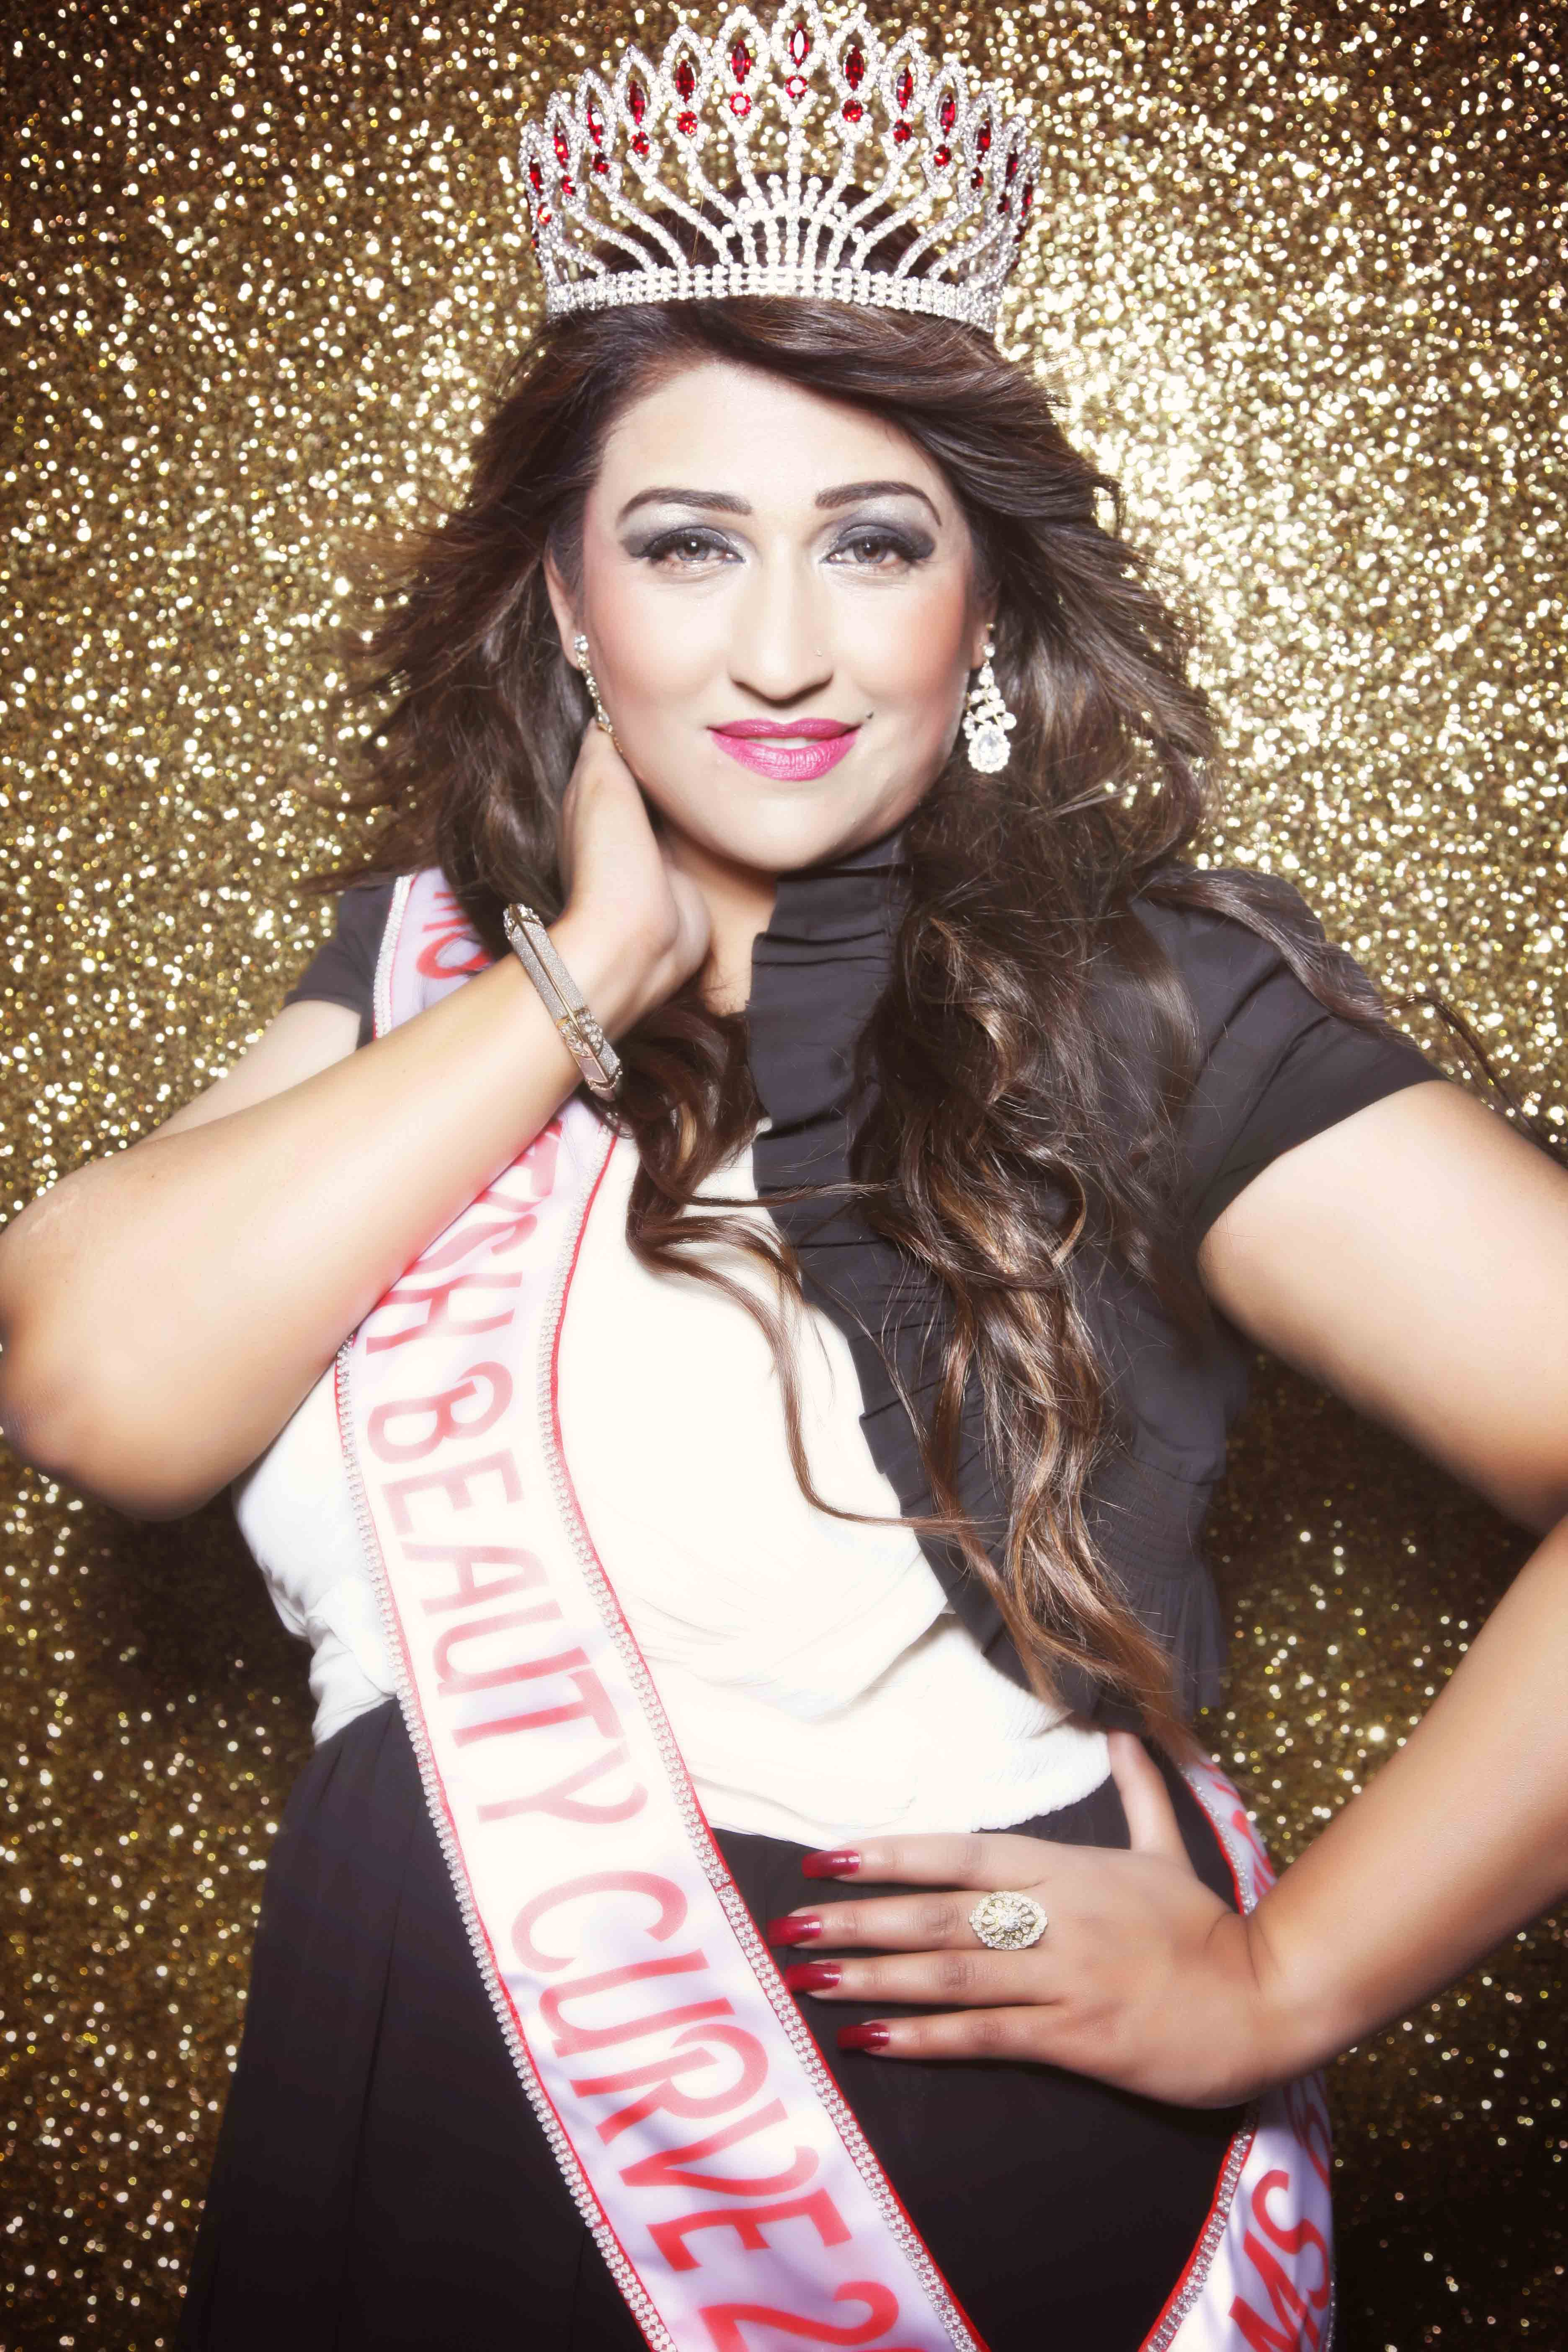 Ms British Beauty Curve 2013